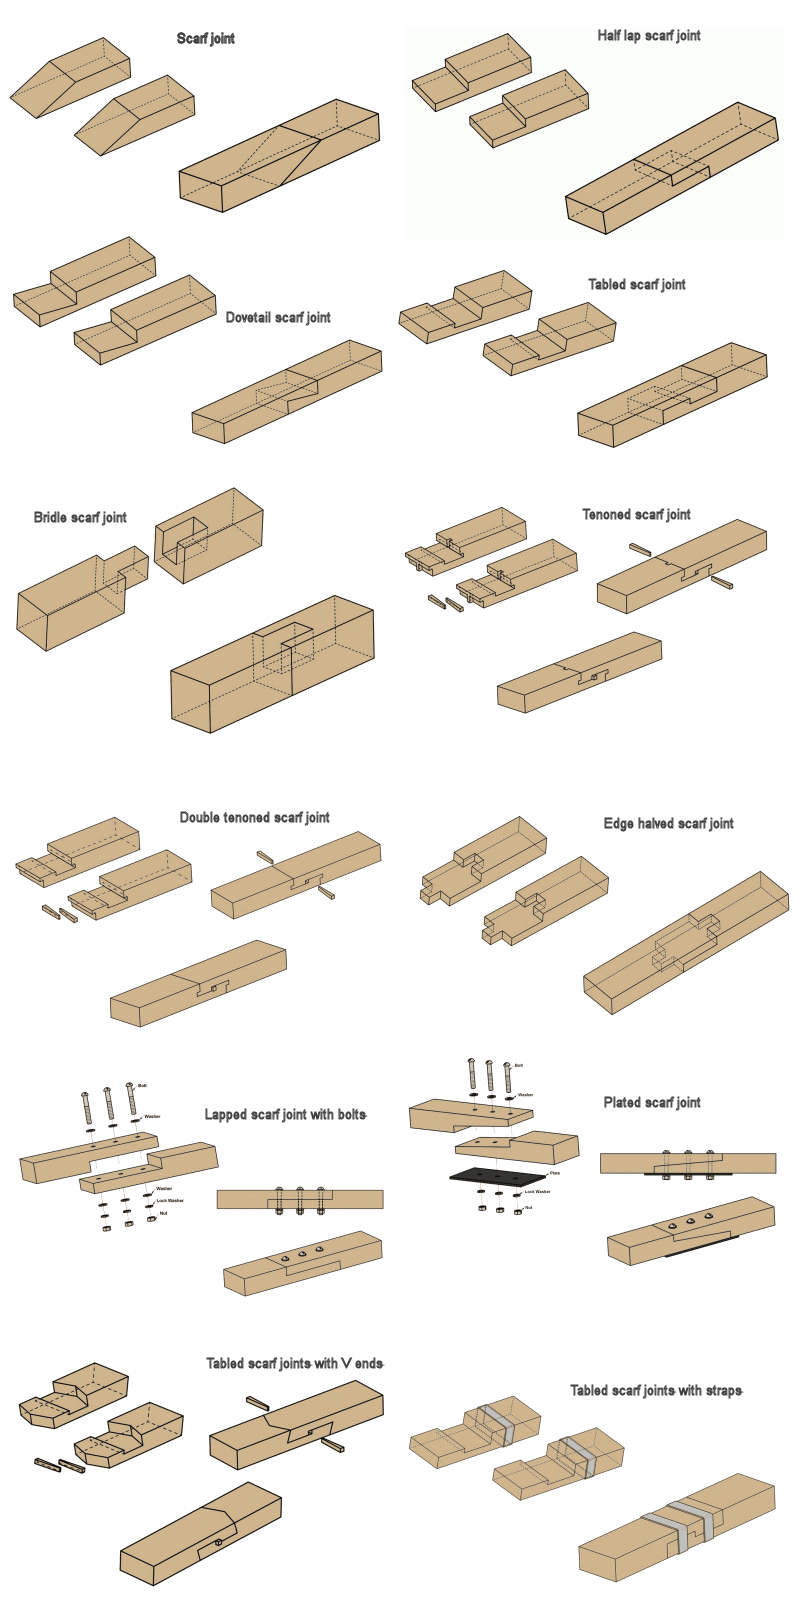 Twelve different scarf joints in carpentry.